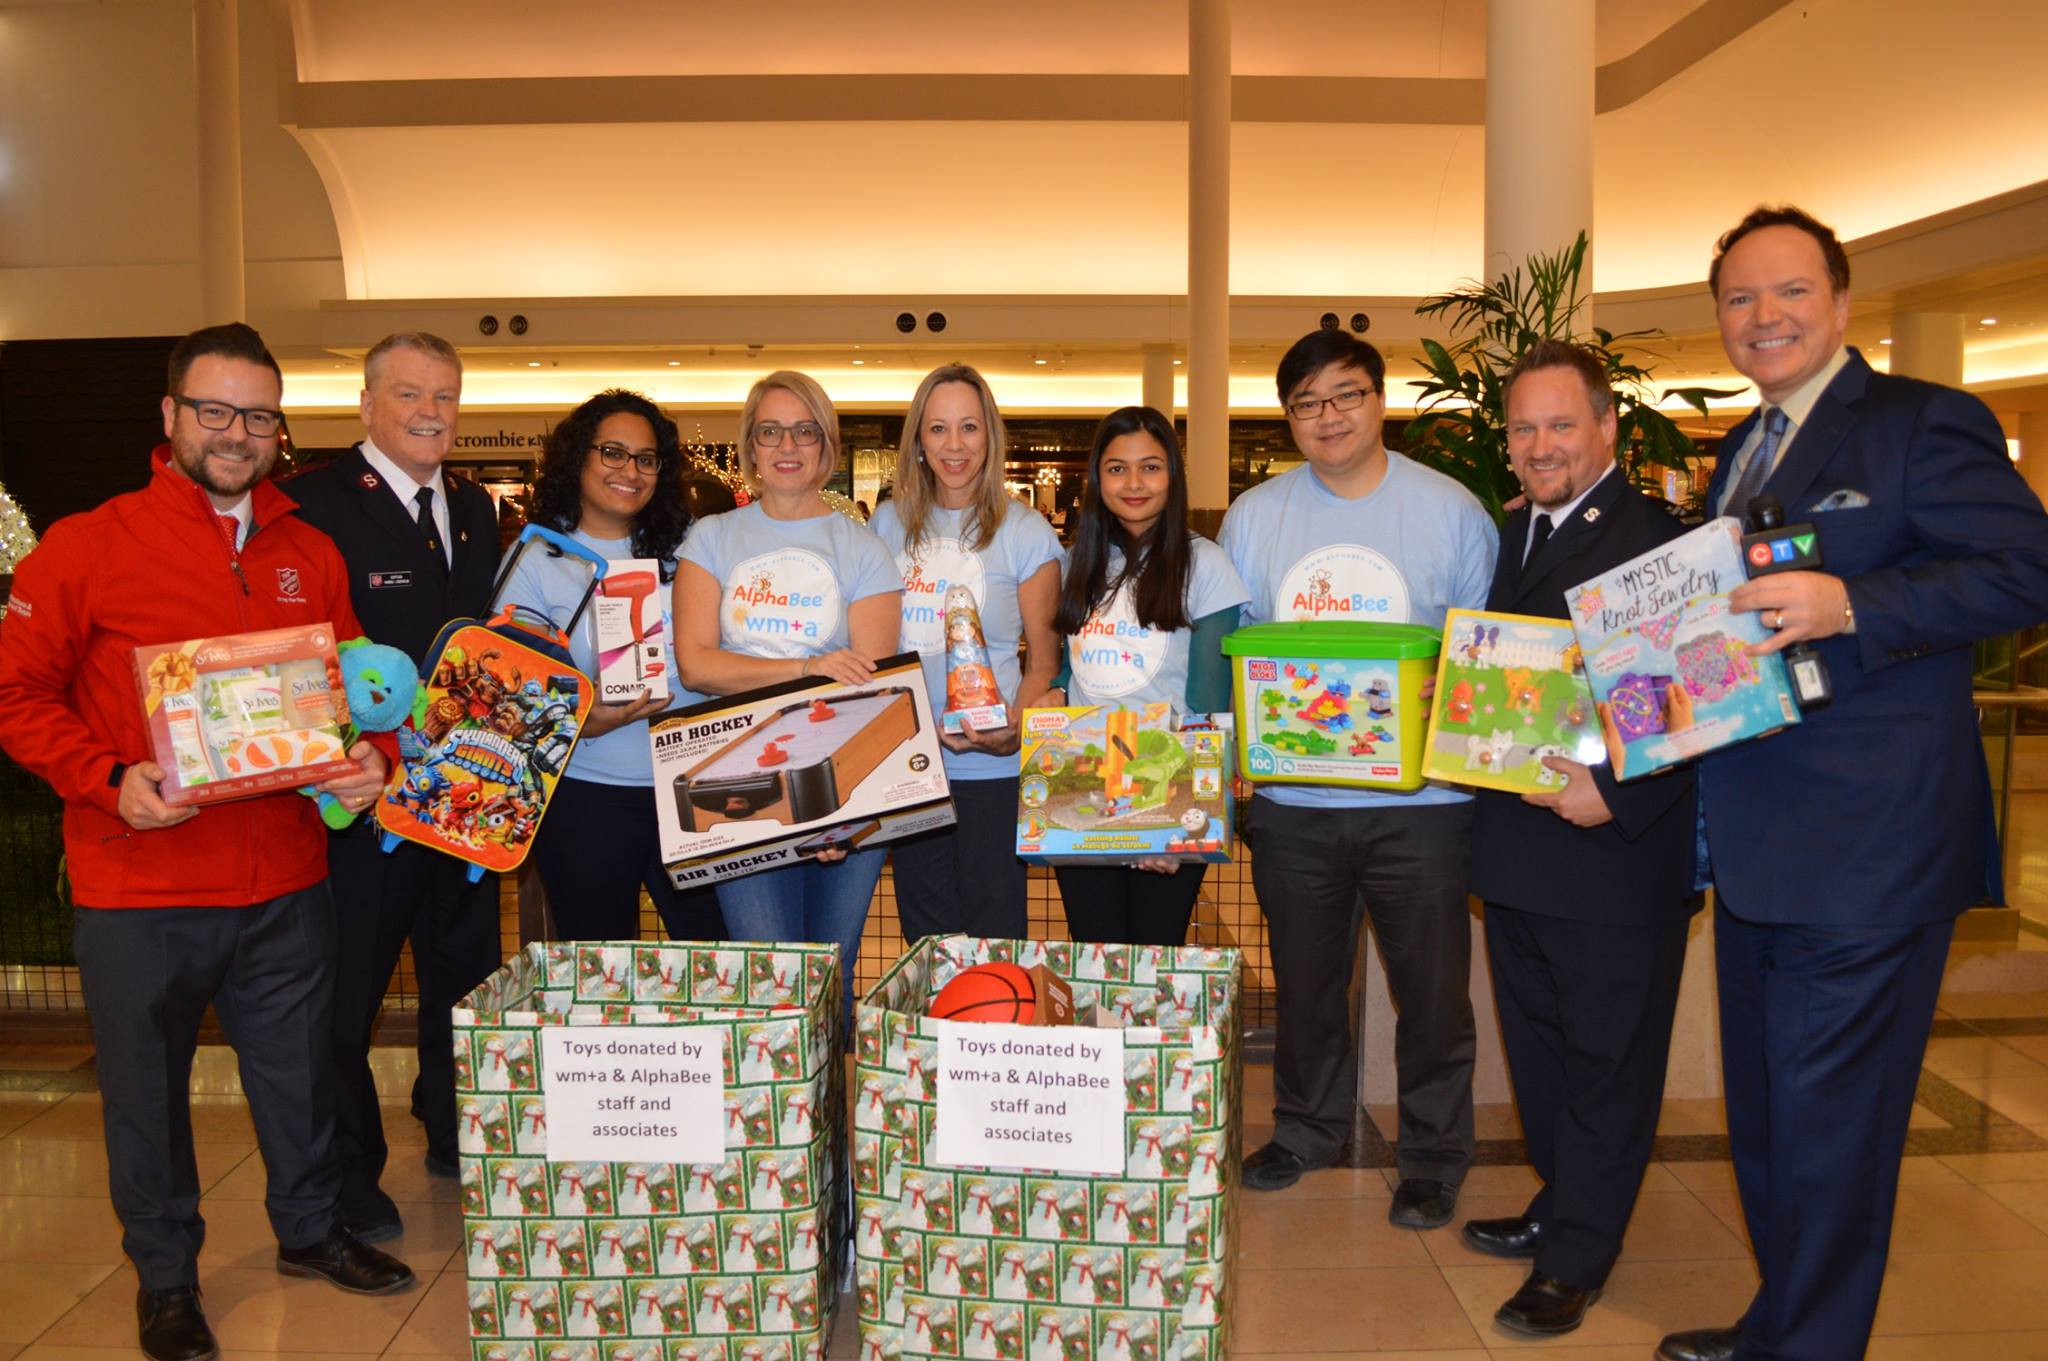 wm+a and AlphaBee staff show off the toys donated for the Salvation Army with reporters from CTV